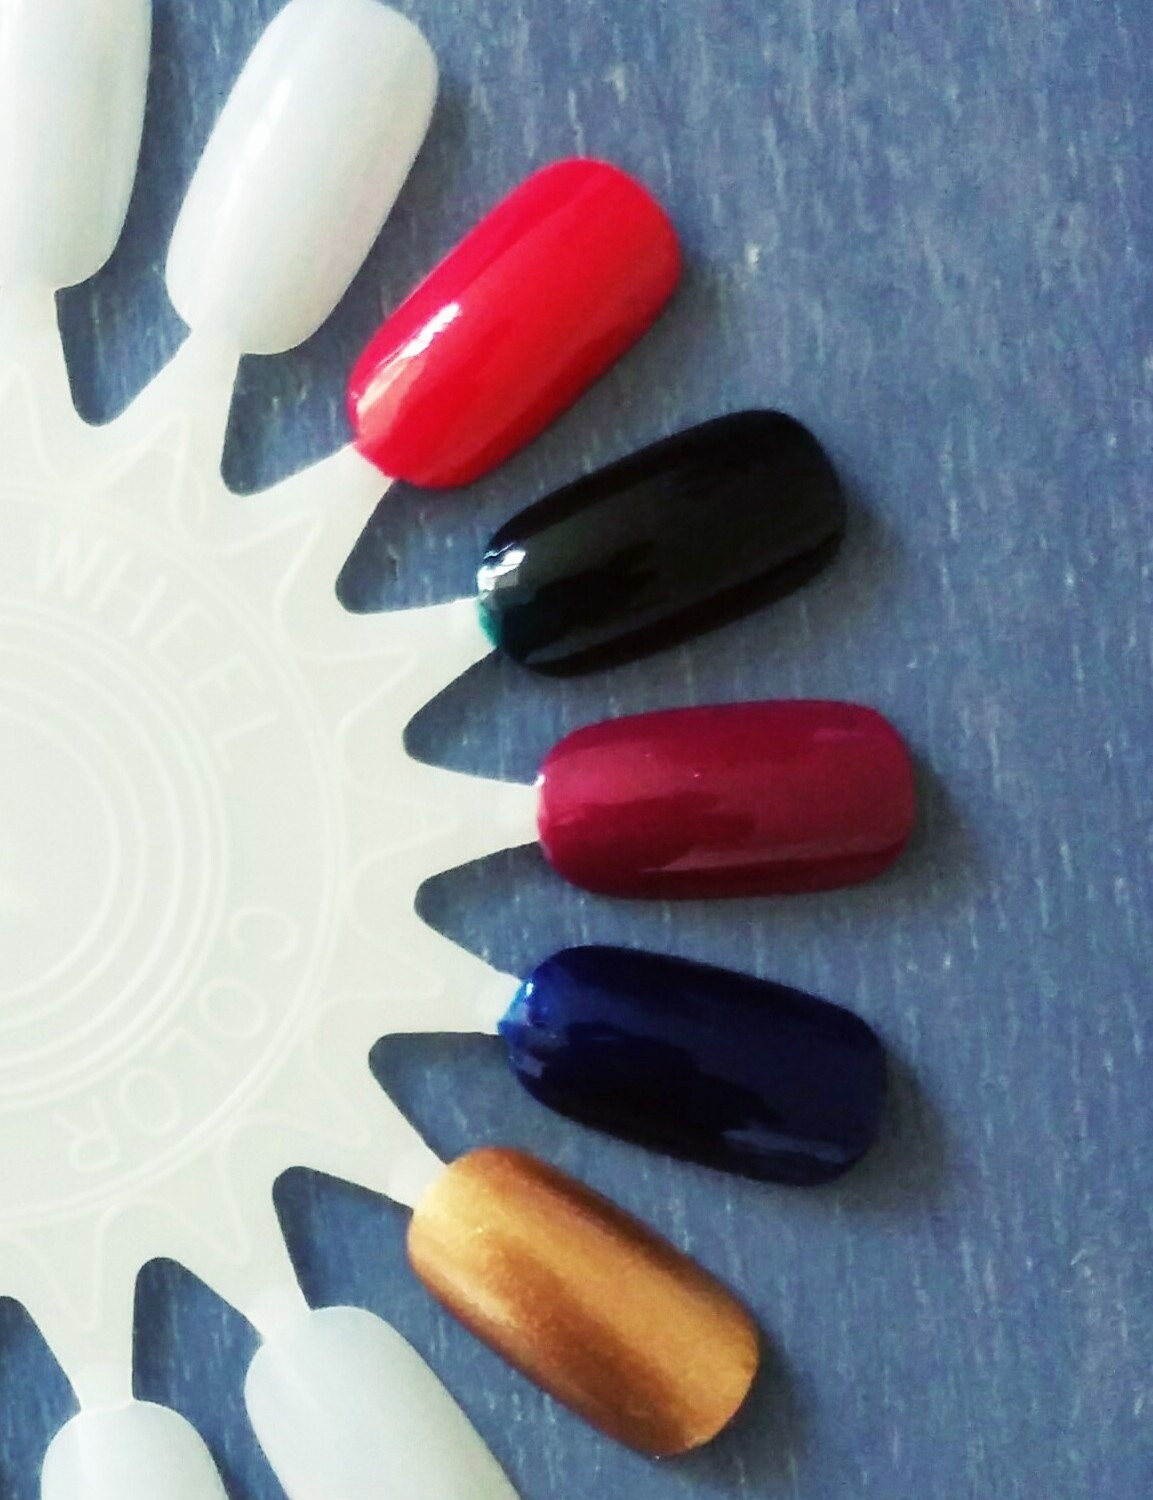 Autumn nail polishes - Chanel, Kure, Revlon